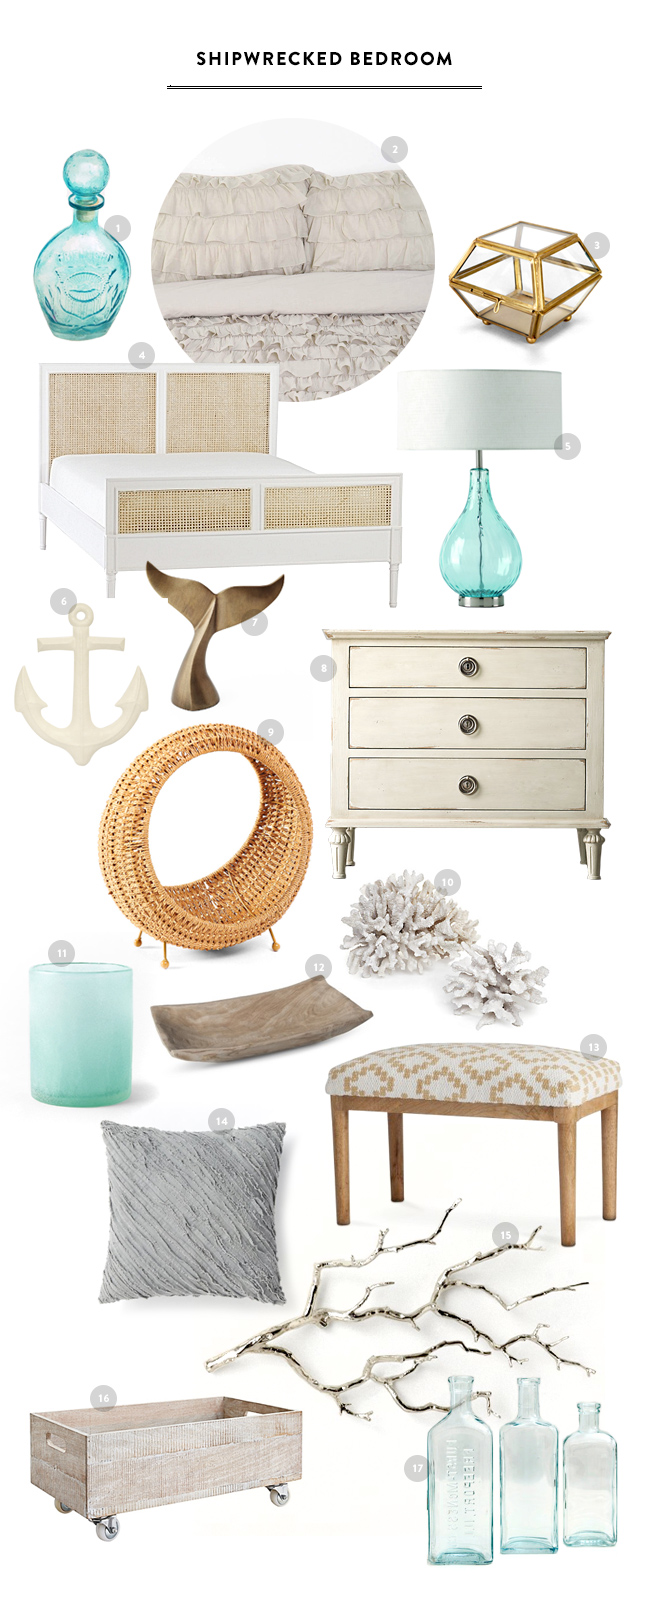 Shipwrecked Vintage Bedroom Inspiration